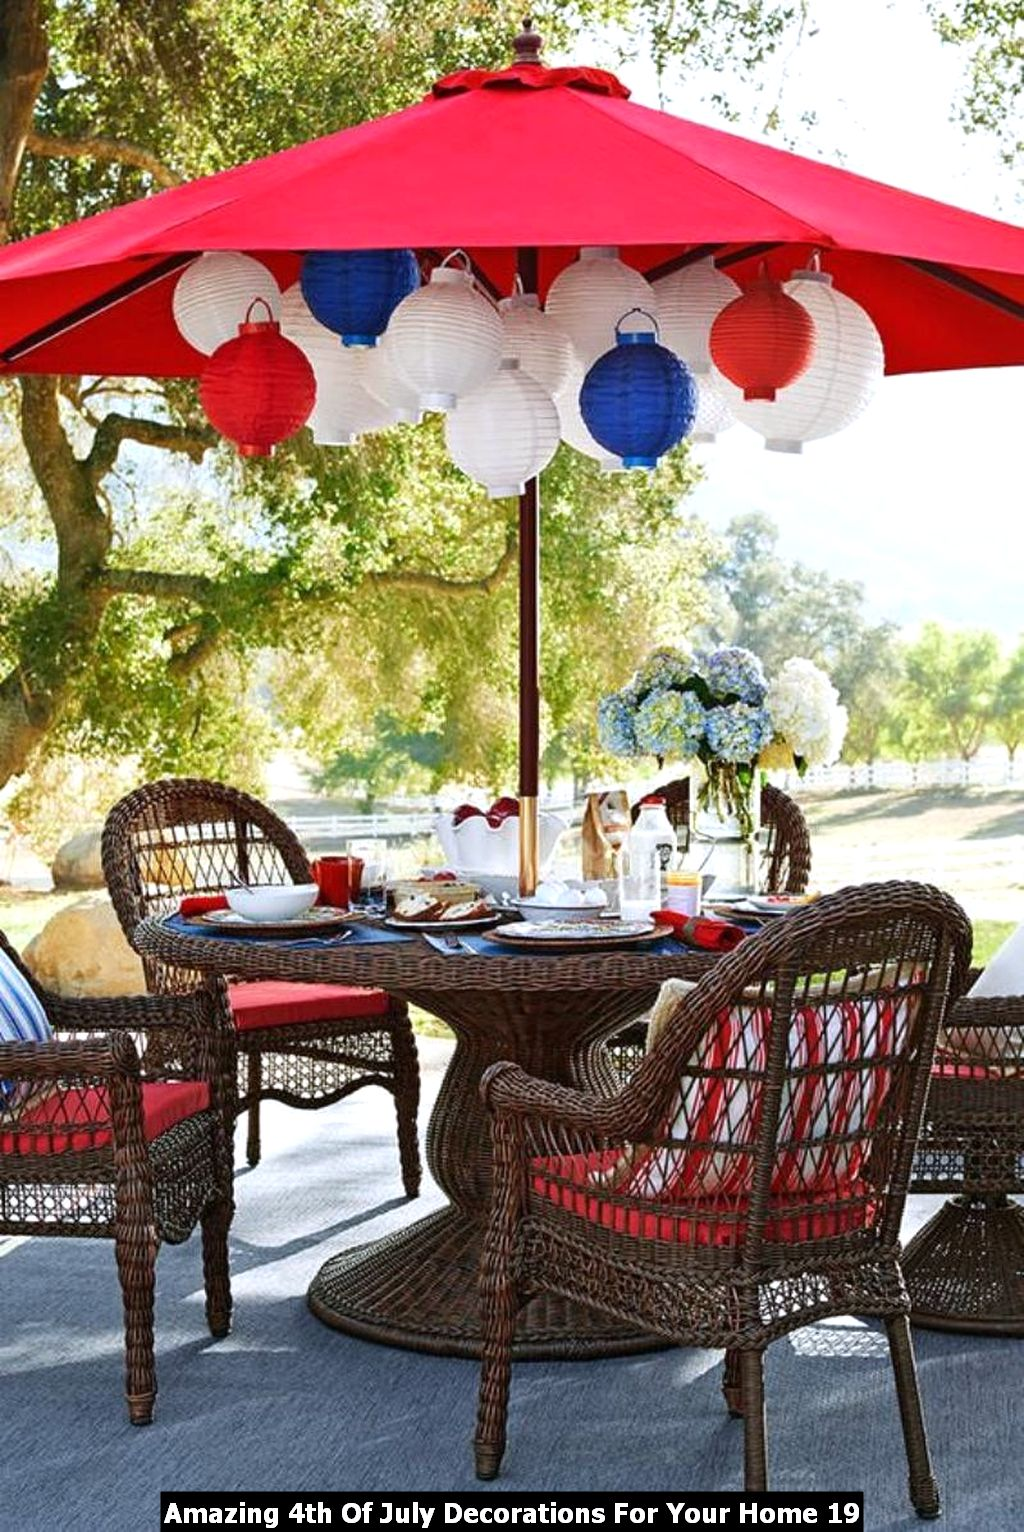 Amazing 4th Of July Decorations For Your Home 19